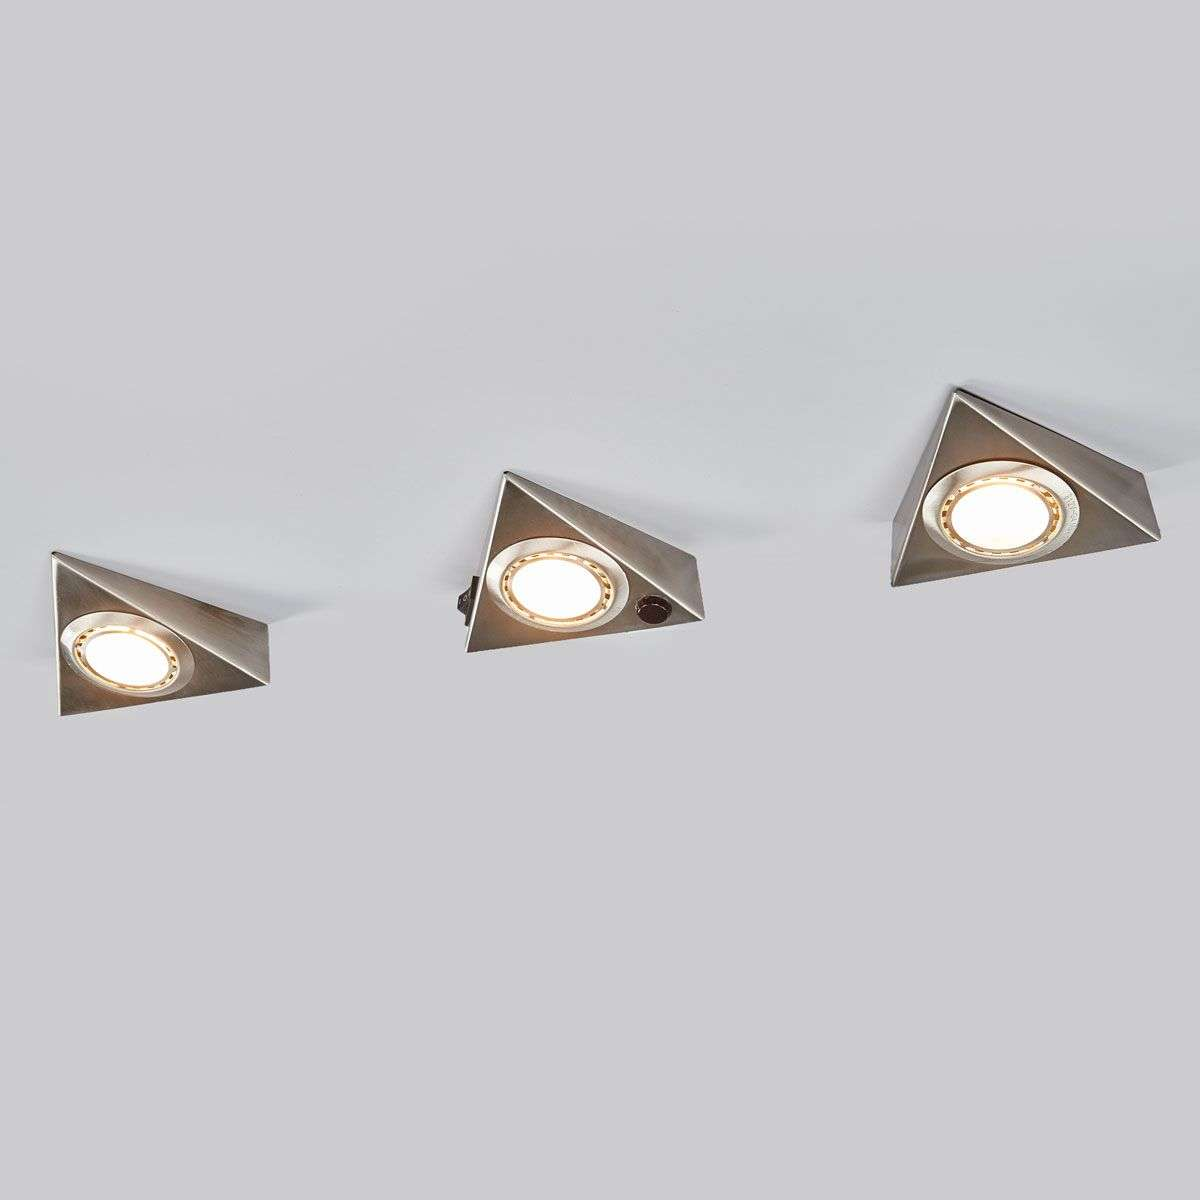 onderbouwlamp triangle met sensor in set van 3. Black Bedroom Furniture Sets. Home Design Ideas